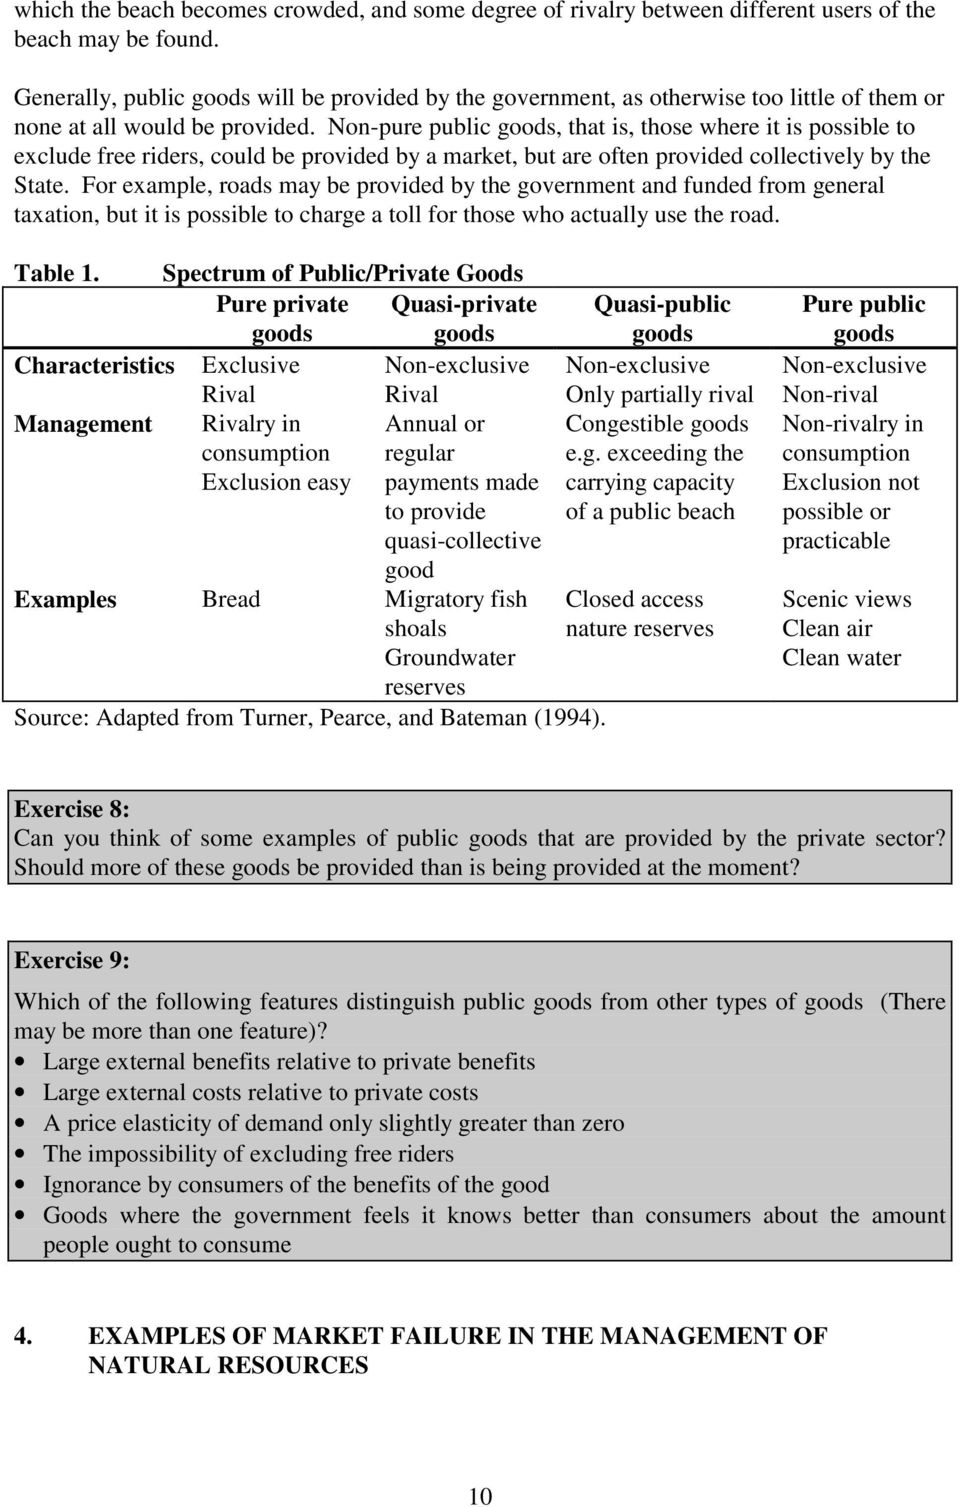 difference between public and private goods with examples